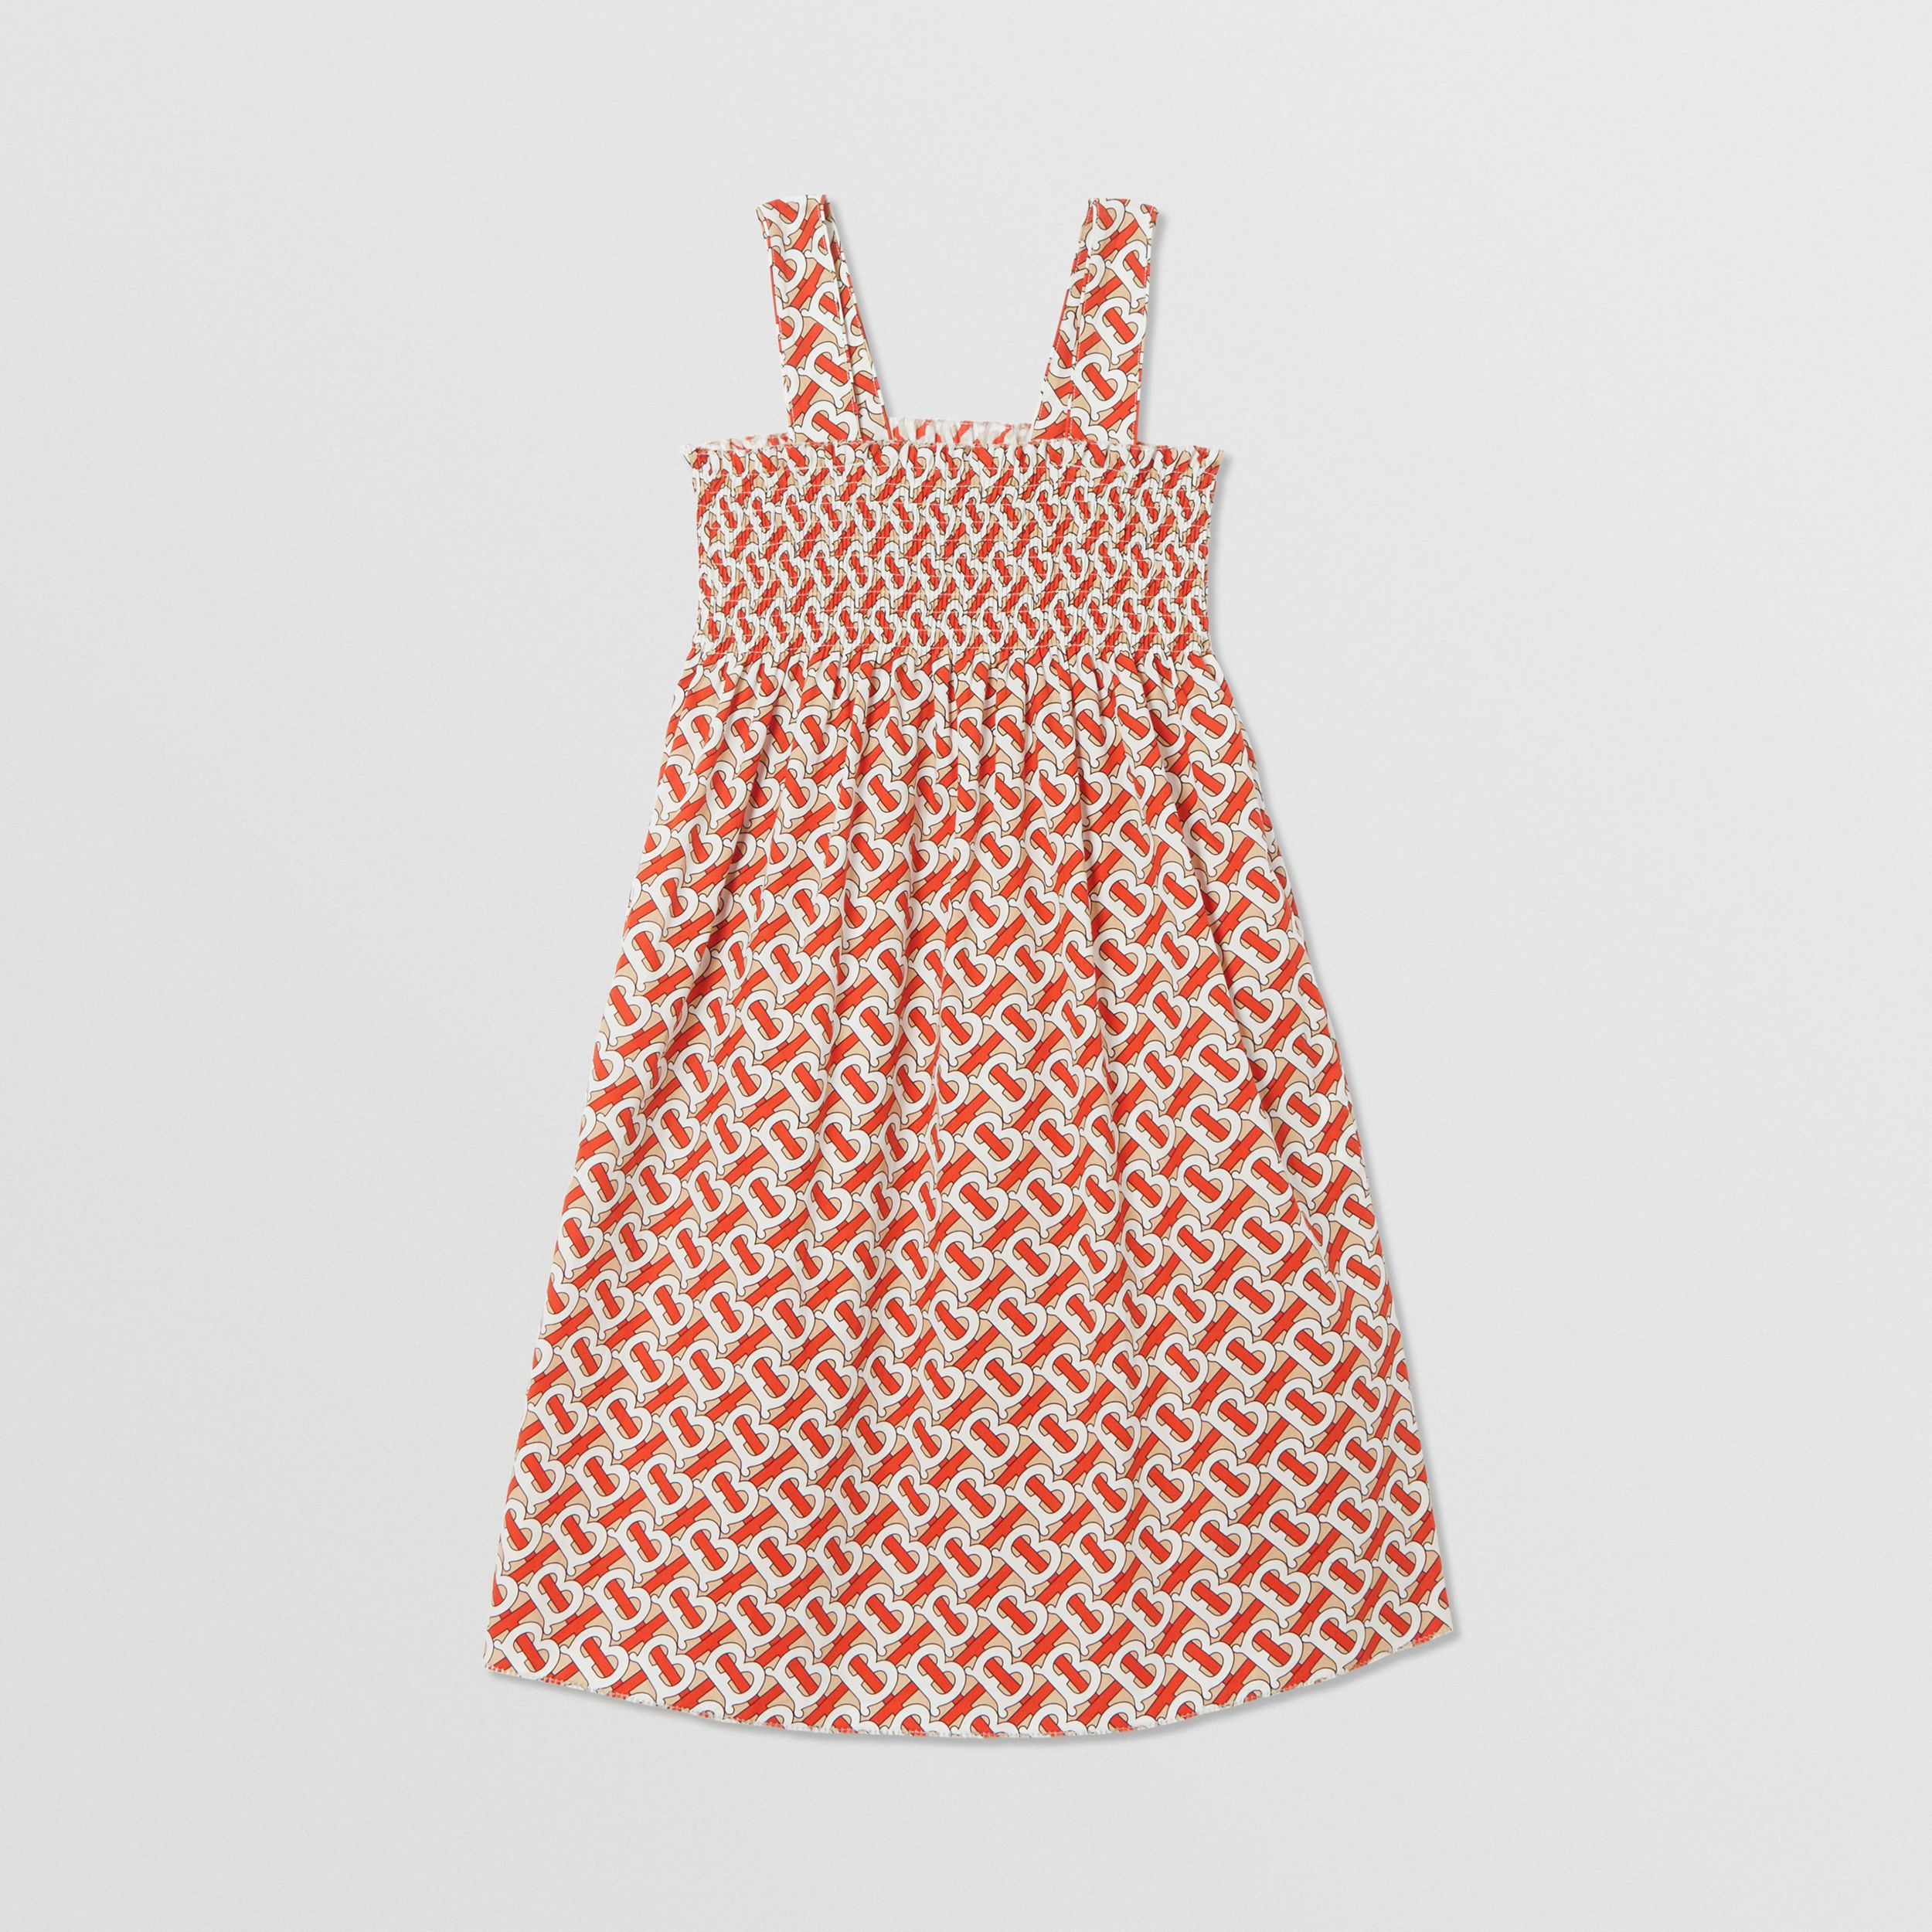 Smocked Monogram Print Cotton Poplin Dress in Vermilion Red | Burberry United Kingdom - 1